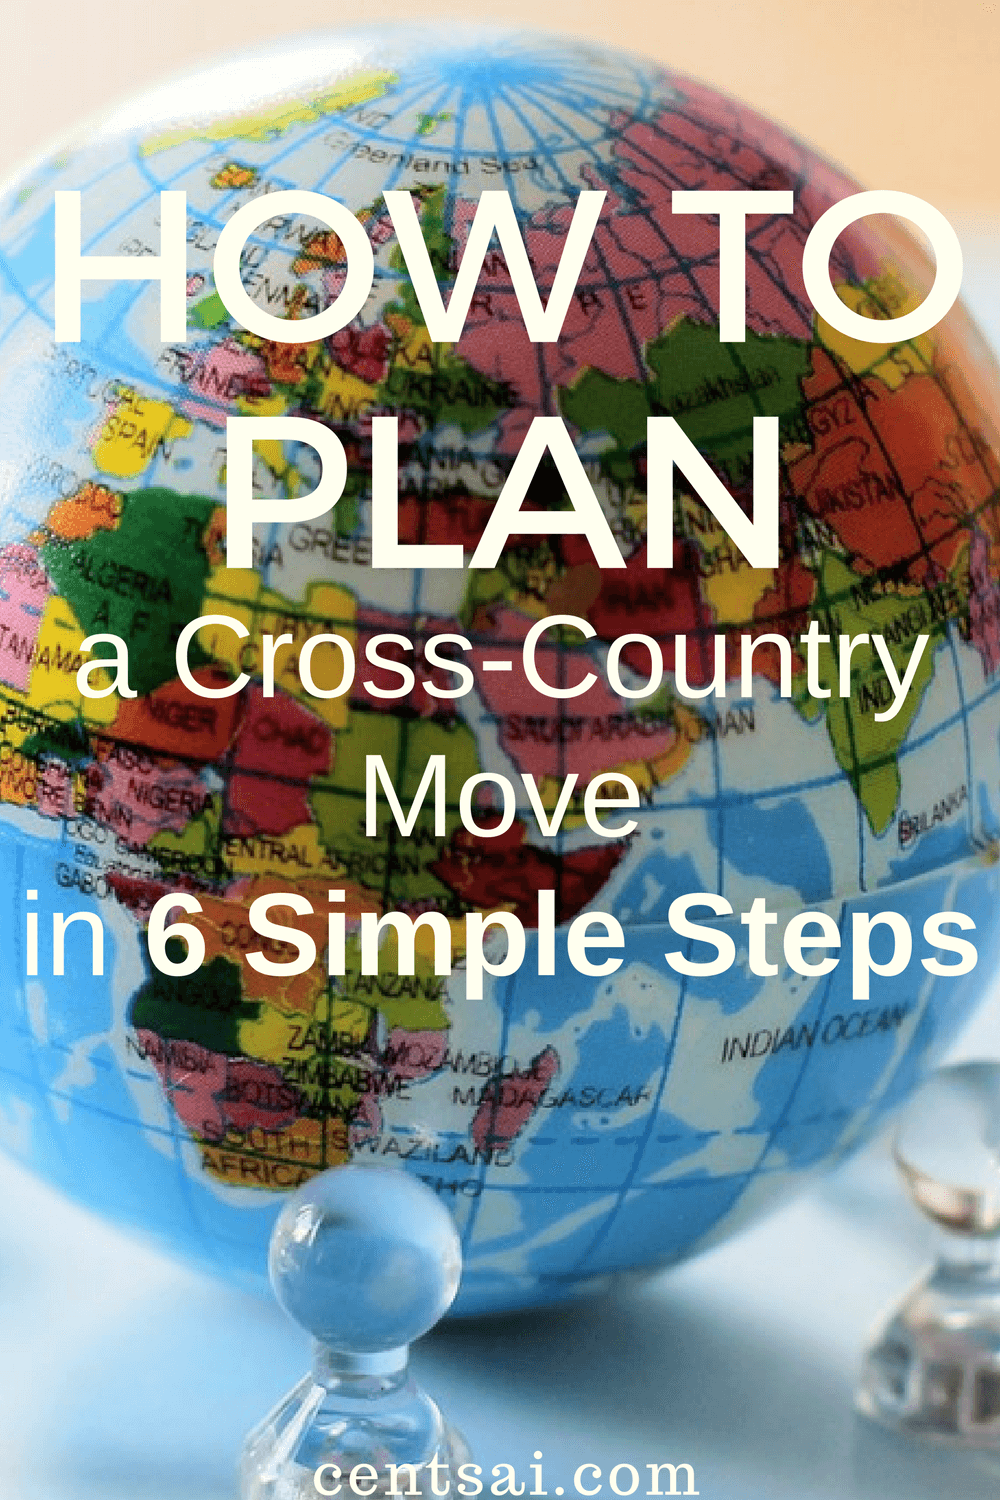 It ain't easy to plan and budget for moving cross-country. But we've got some good advice on how to plan a move without going crazy.